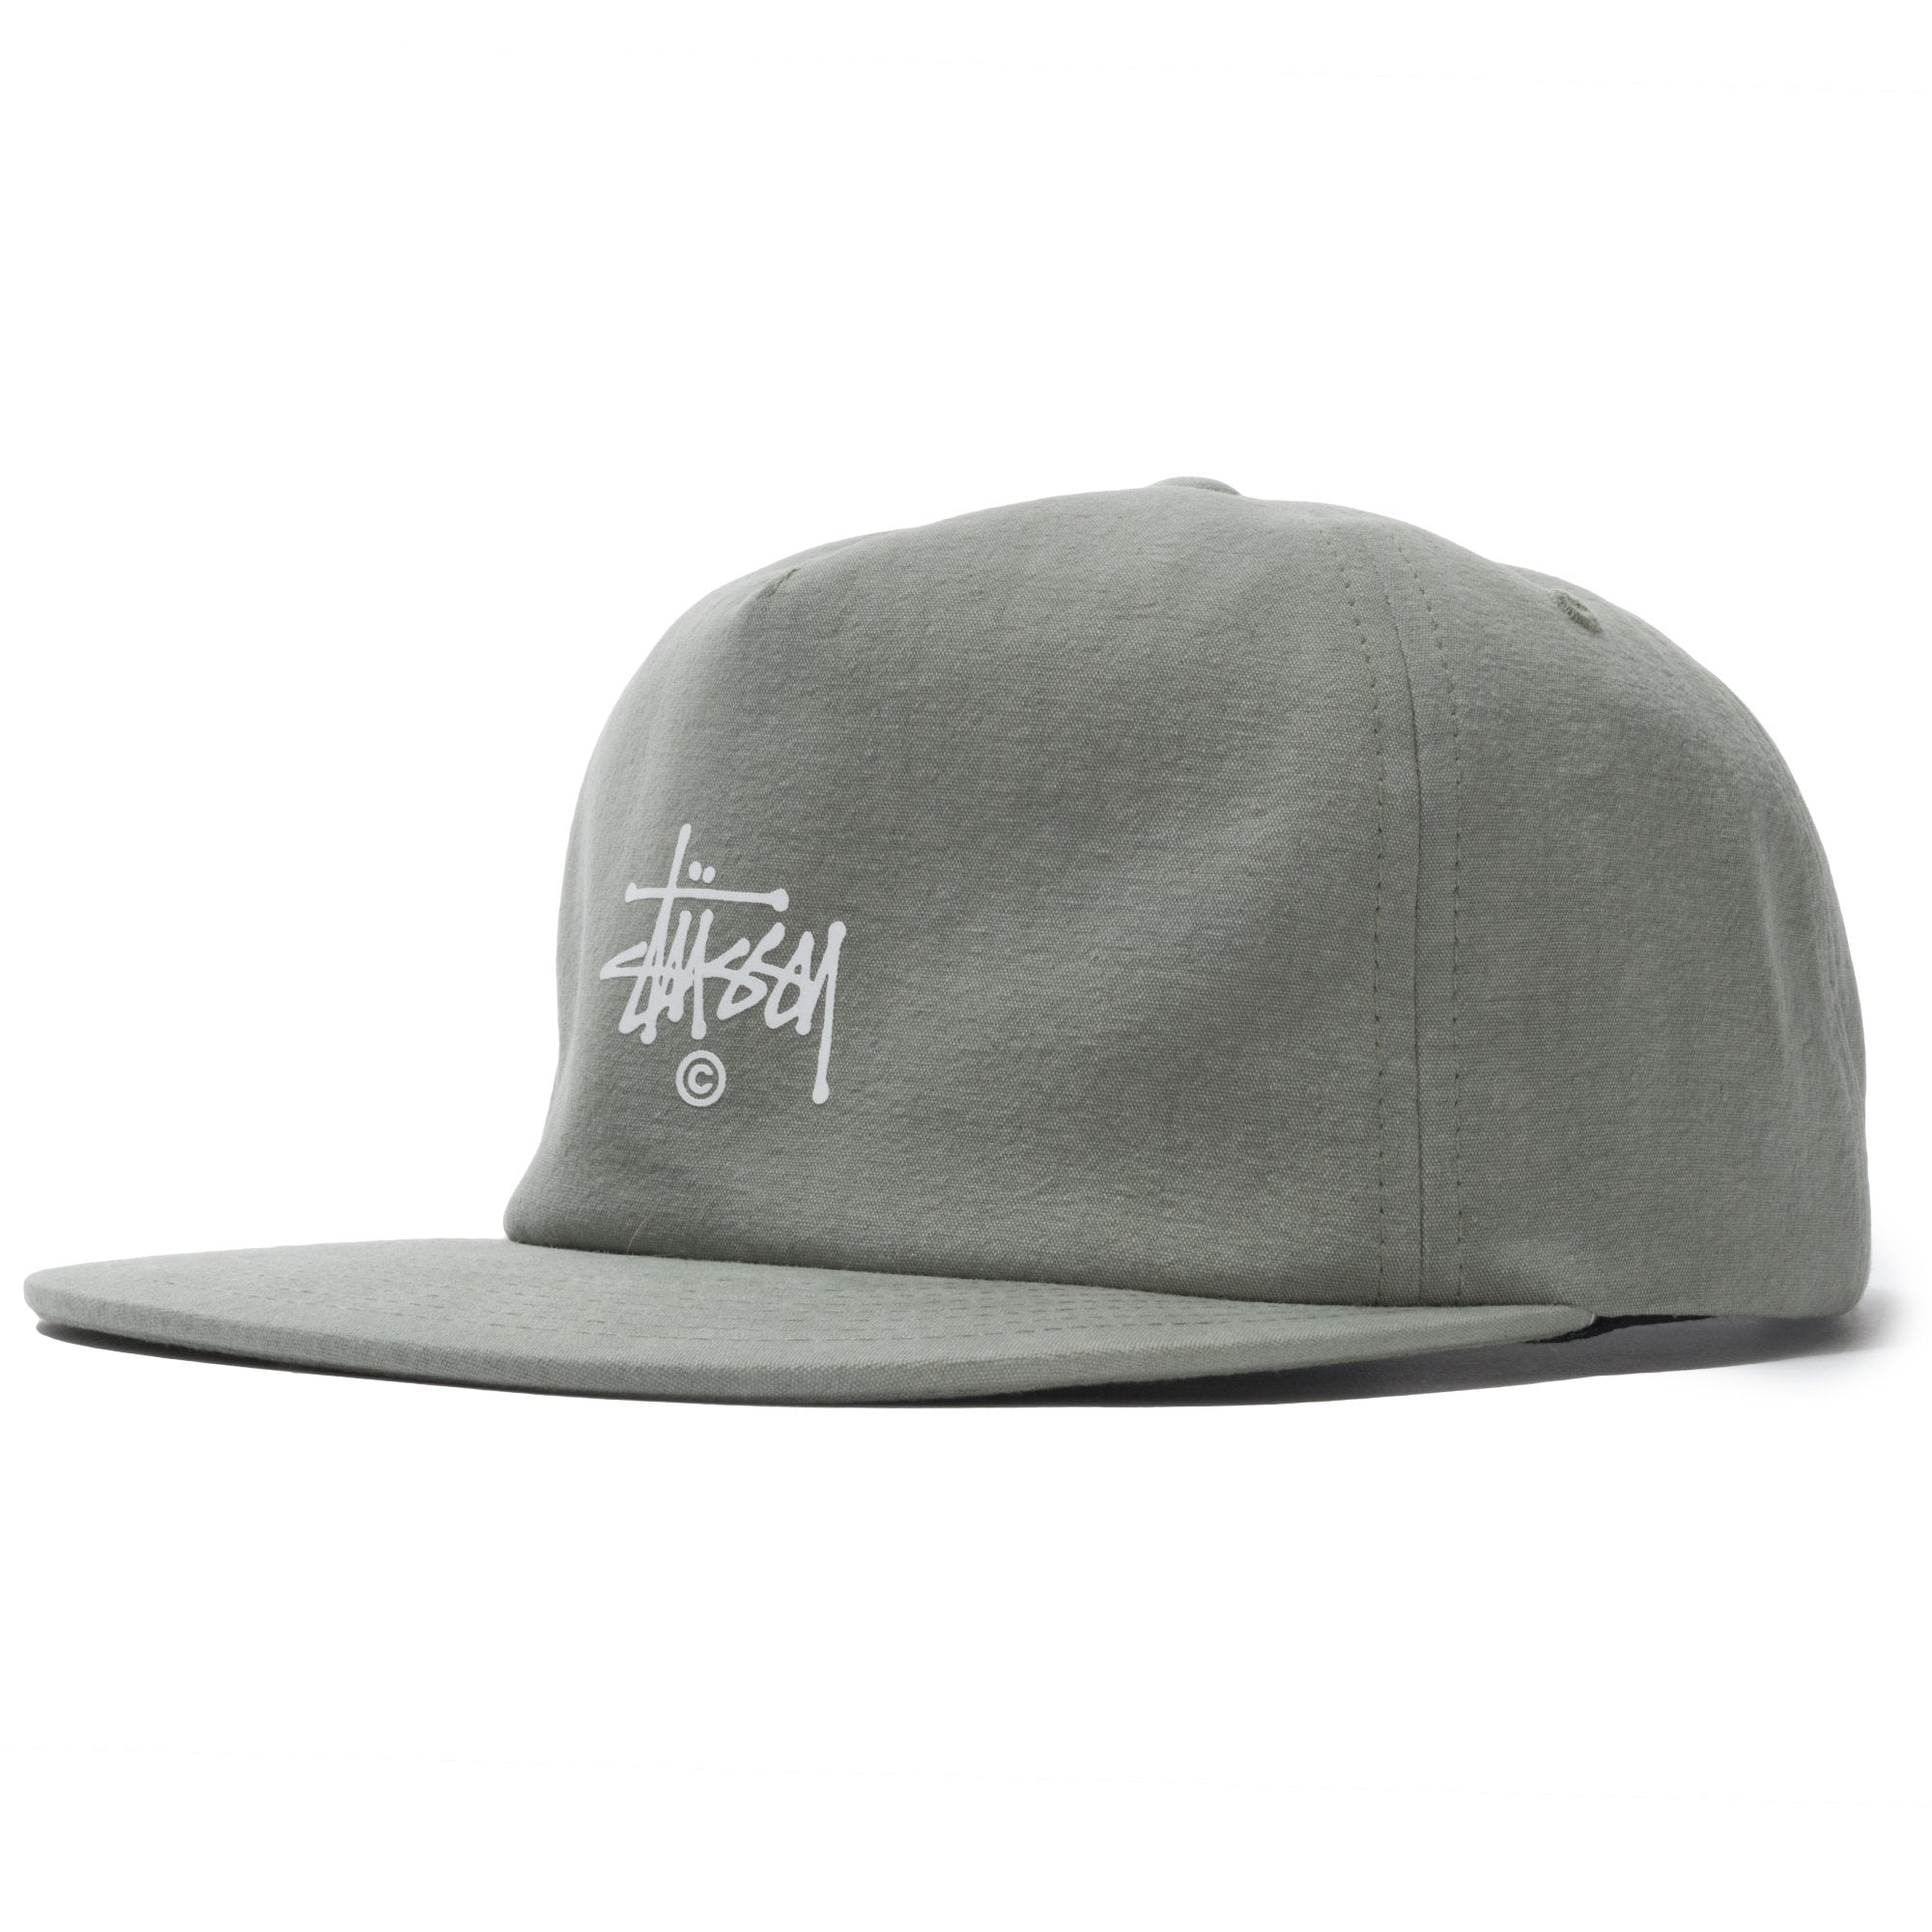 b3bbc599c Stussy Hats, Bucket Hats, Caps and Beanies for Men and Women ...